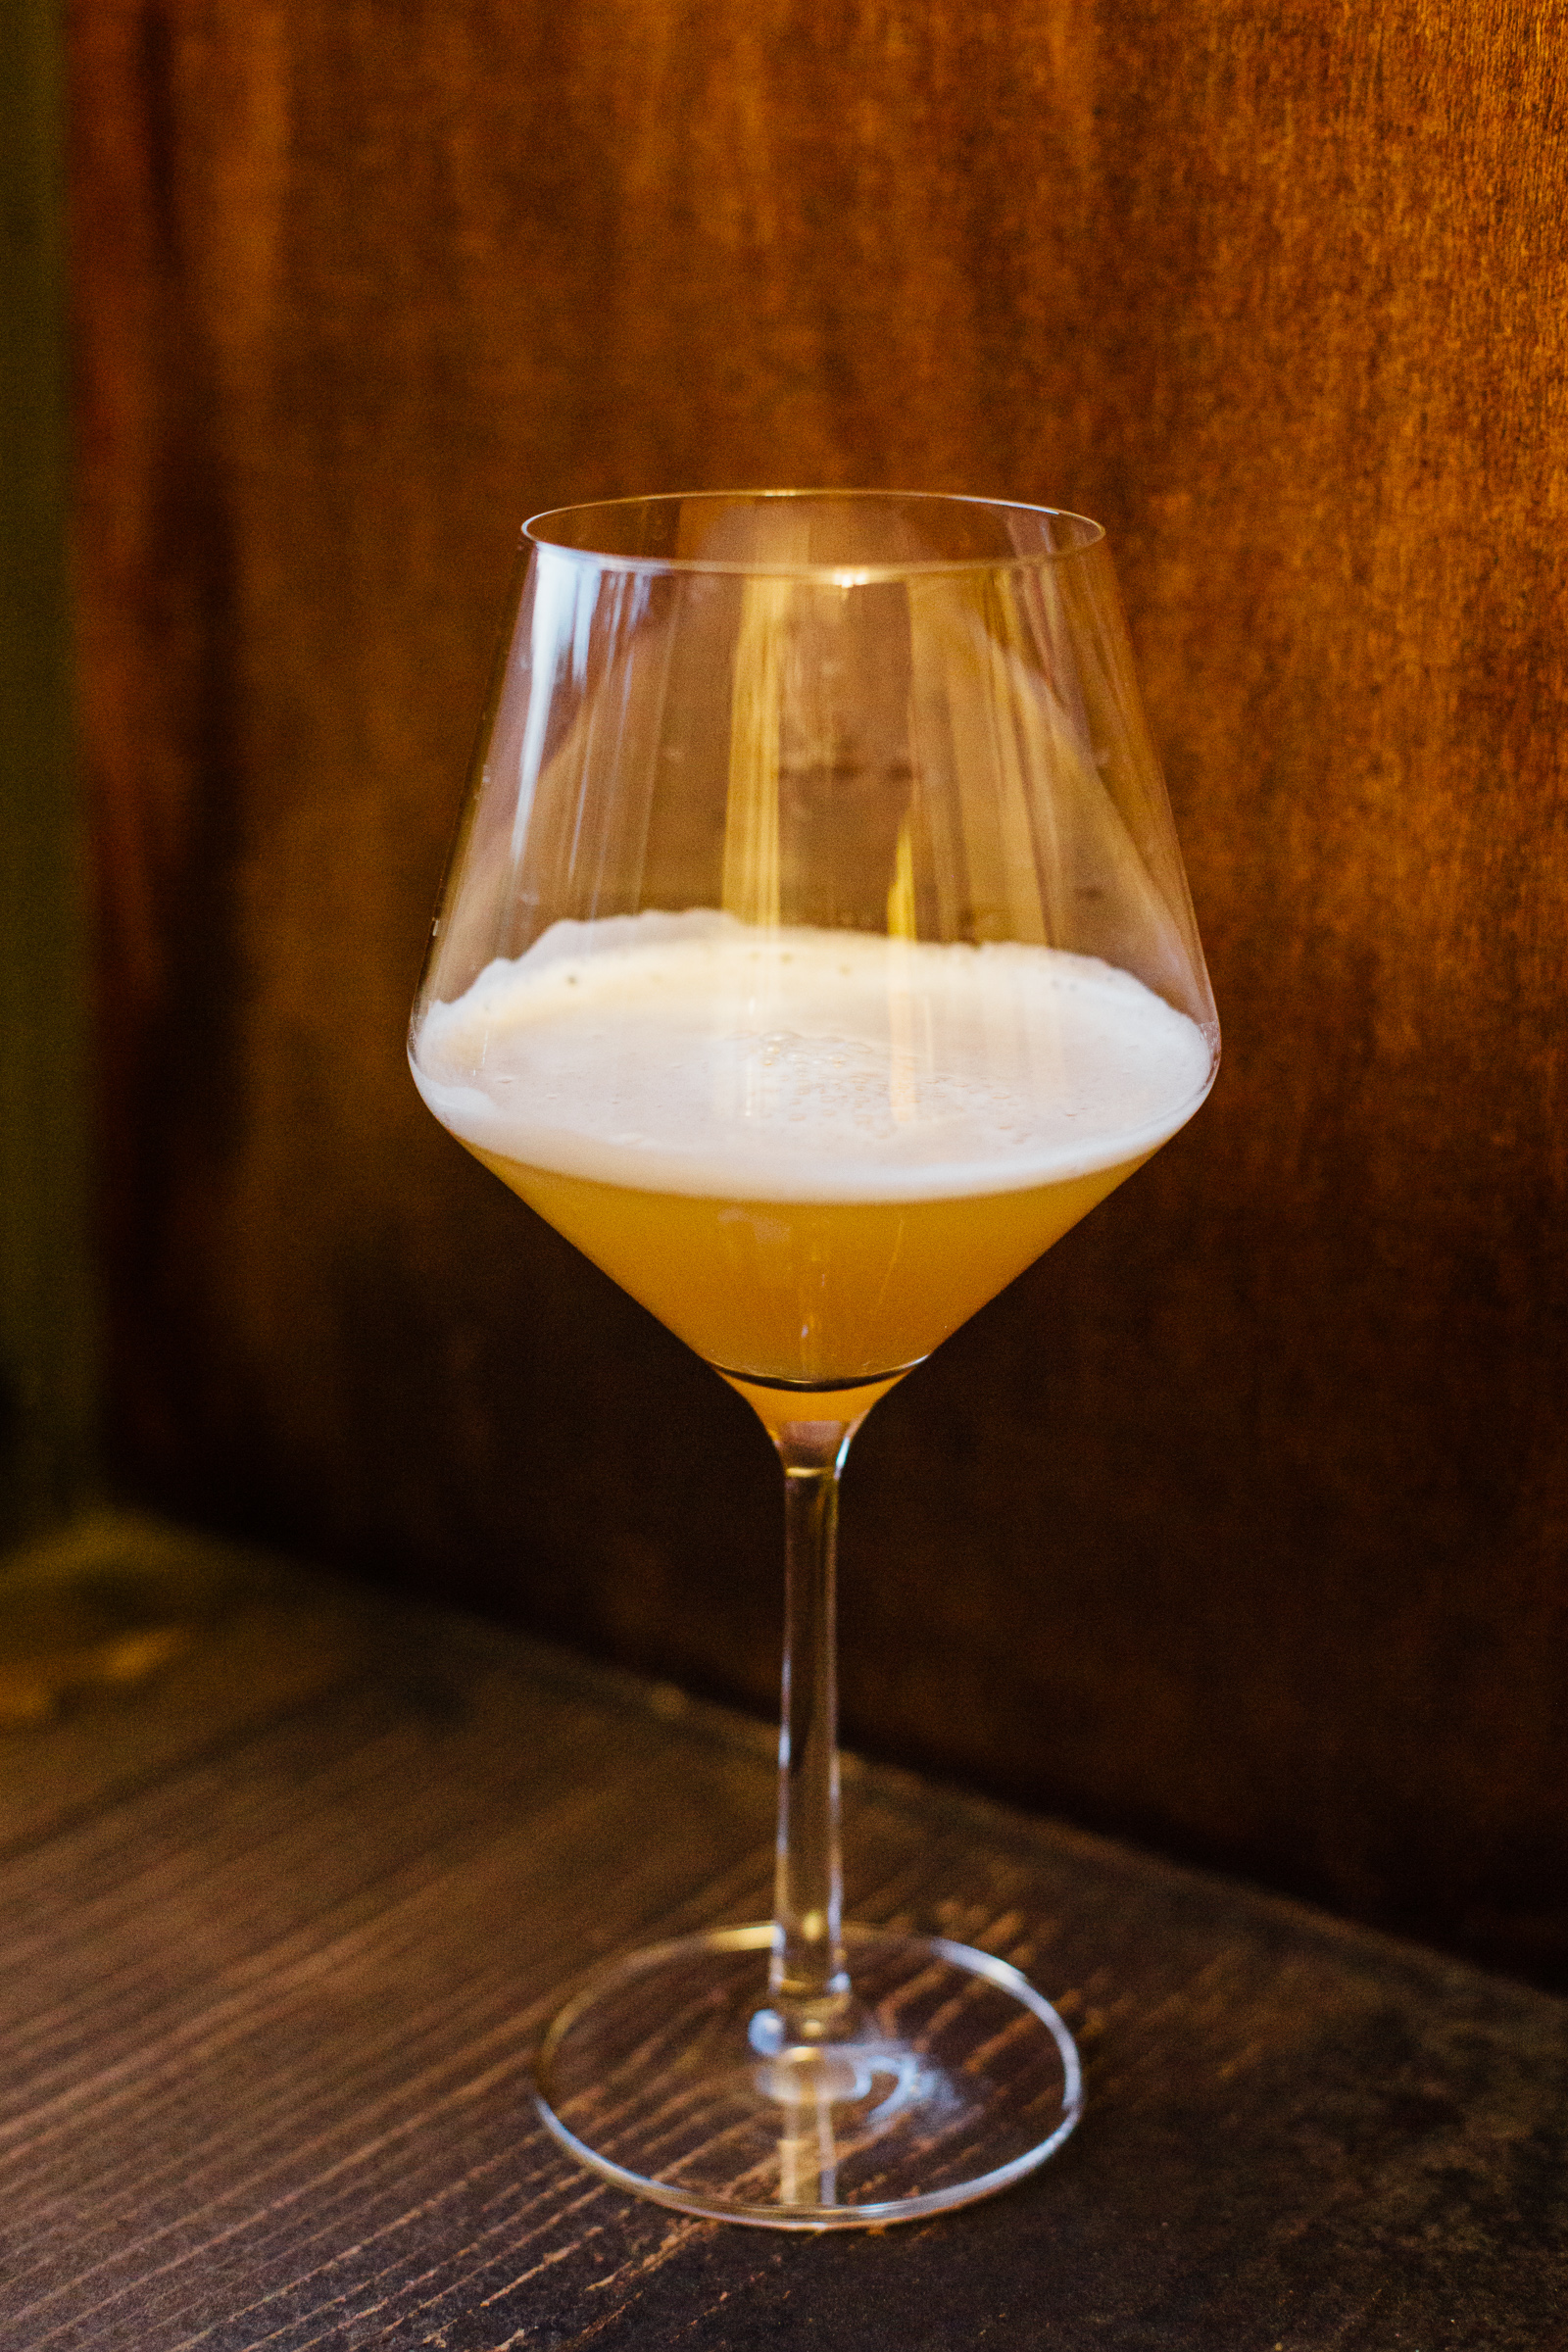 My first batch was a hazy double IPA. It looked good and, yes, it was the best beer I've ever had.